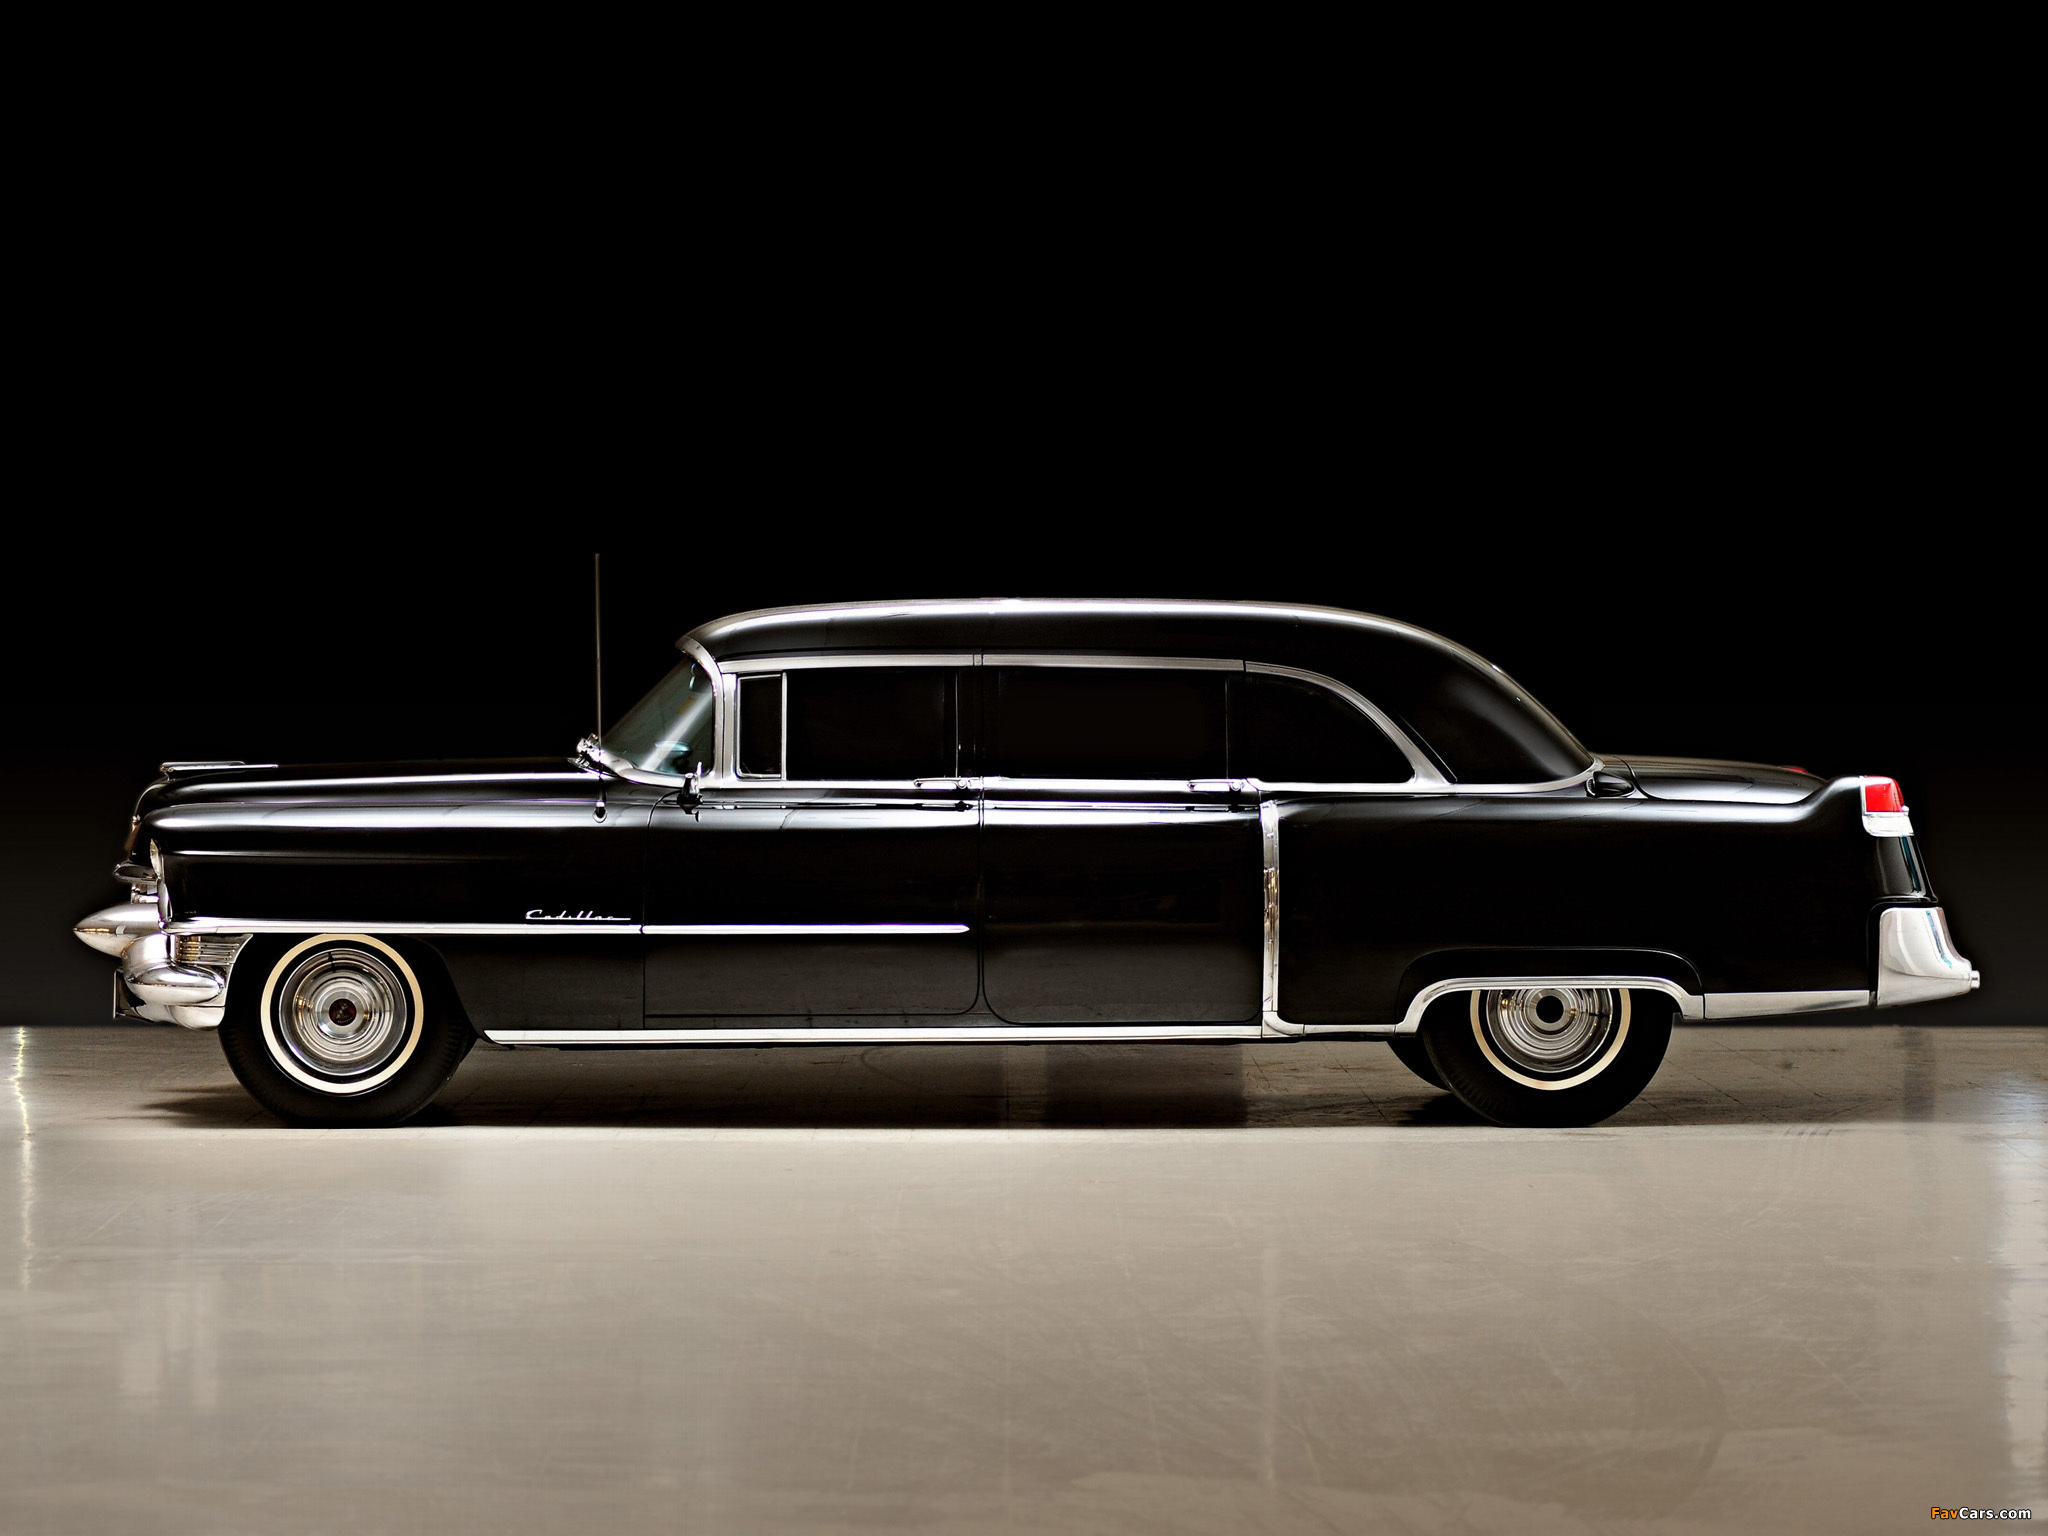 Cadillac Fleetwood Seventy-Five Limousine 1955 wallpapers ...